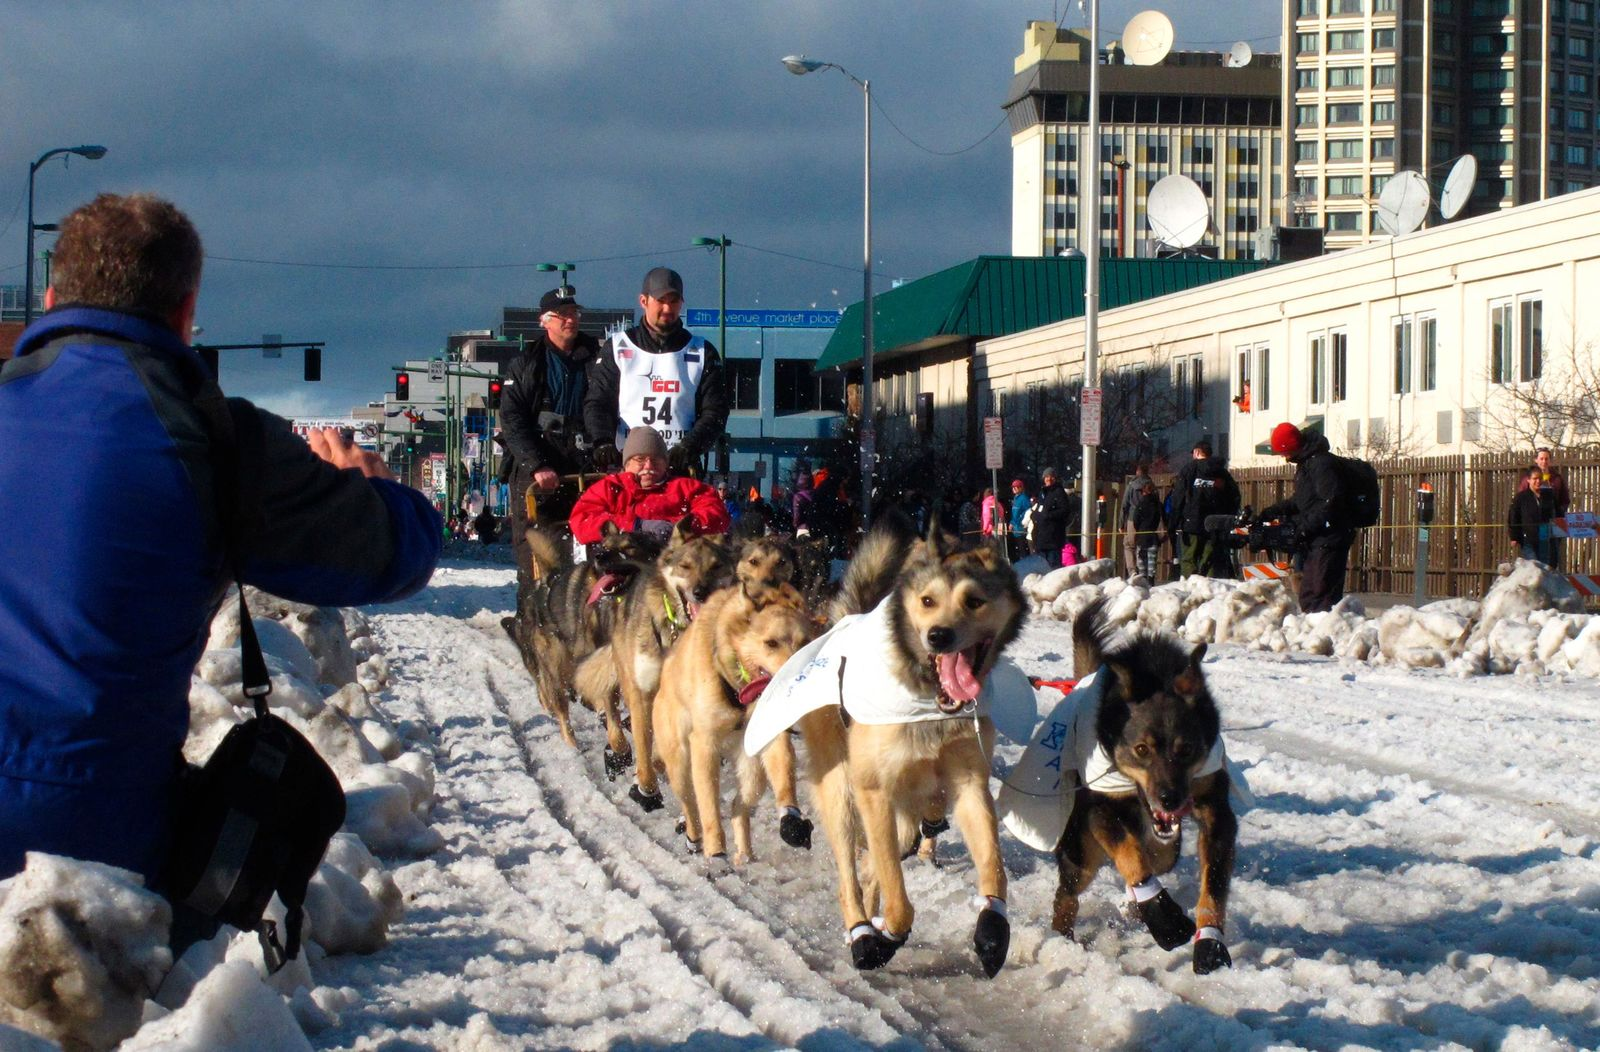 FILE - In this March 7, 2015, file photo, musher Peter Kaiser, of Bethel, Alaska, leads his team past spectators during the ceremonial start of the Iditarod Trail Sled Dog Race, in Anchorage, Alaska. (AP Photo/Rachel D'Oro, File)